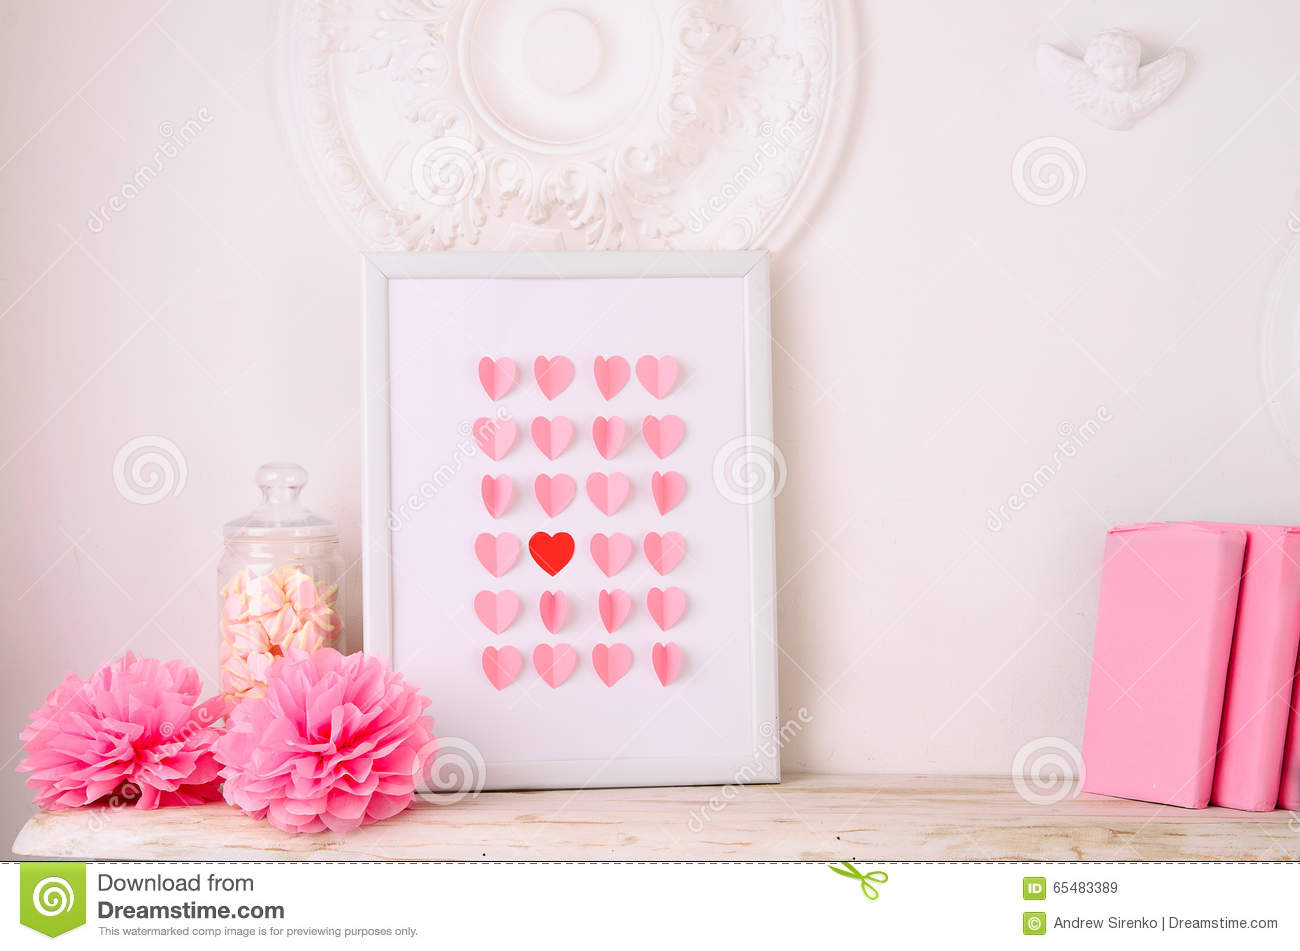 Valentines Day Design With Hearts In Frame Stock Image - Image of ...